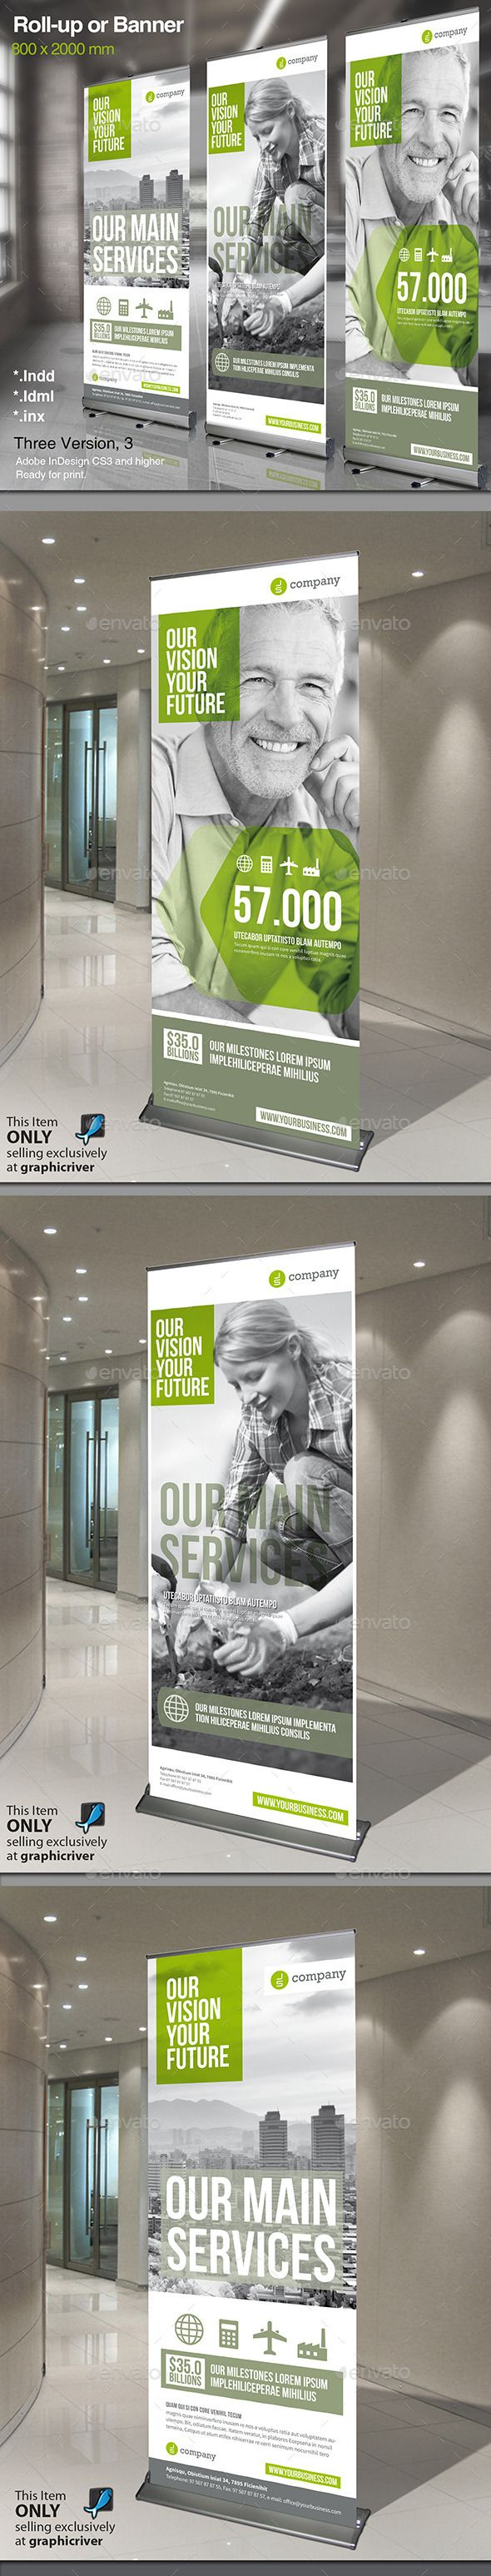 Corporate Roll-up or Banner Design Tempalte Download…